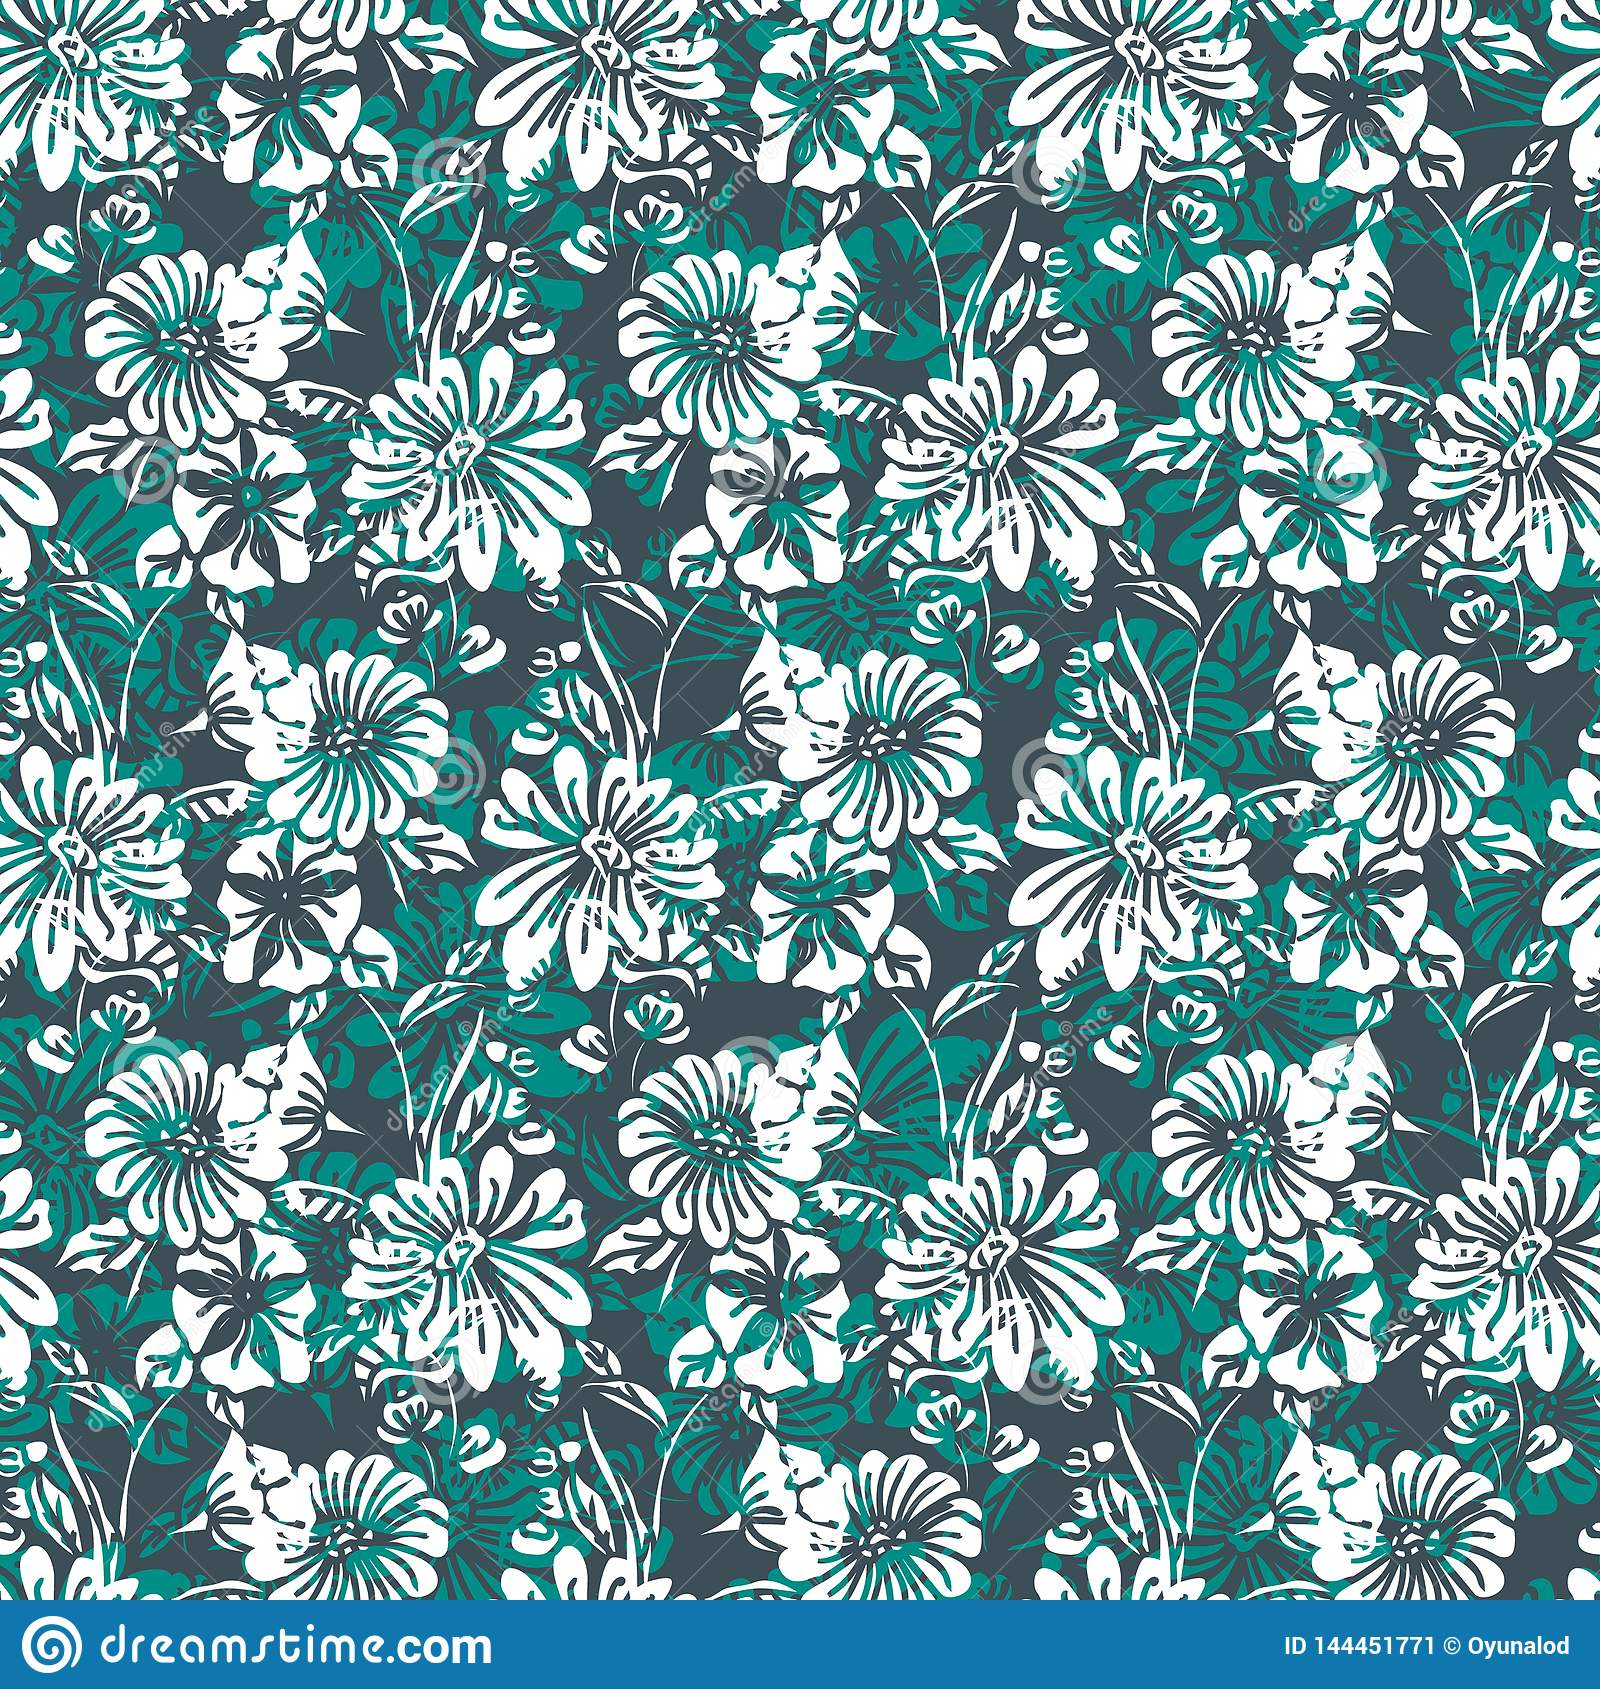 Floral Seamless Pattern With Abstract Leaves Flowers Petunias And Daisies In Shades Of Green White And Black Stock Vector Illustration Of Color Design 144451771